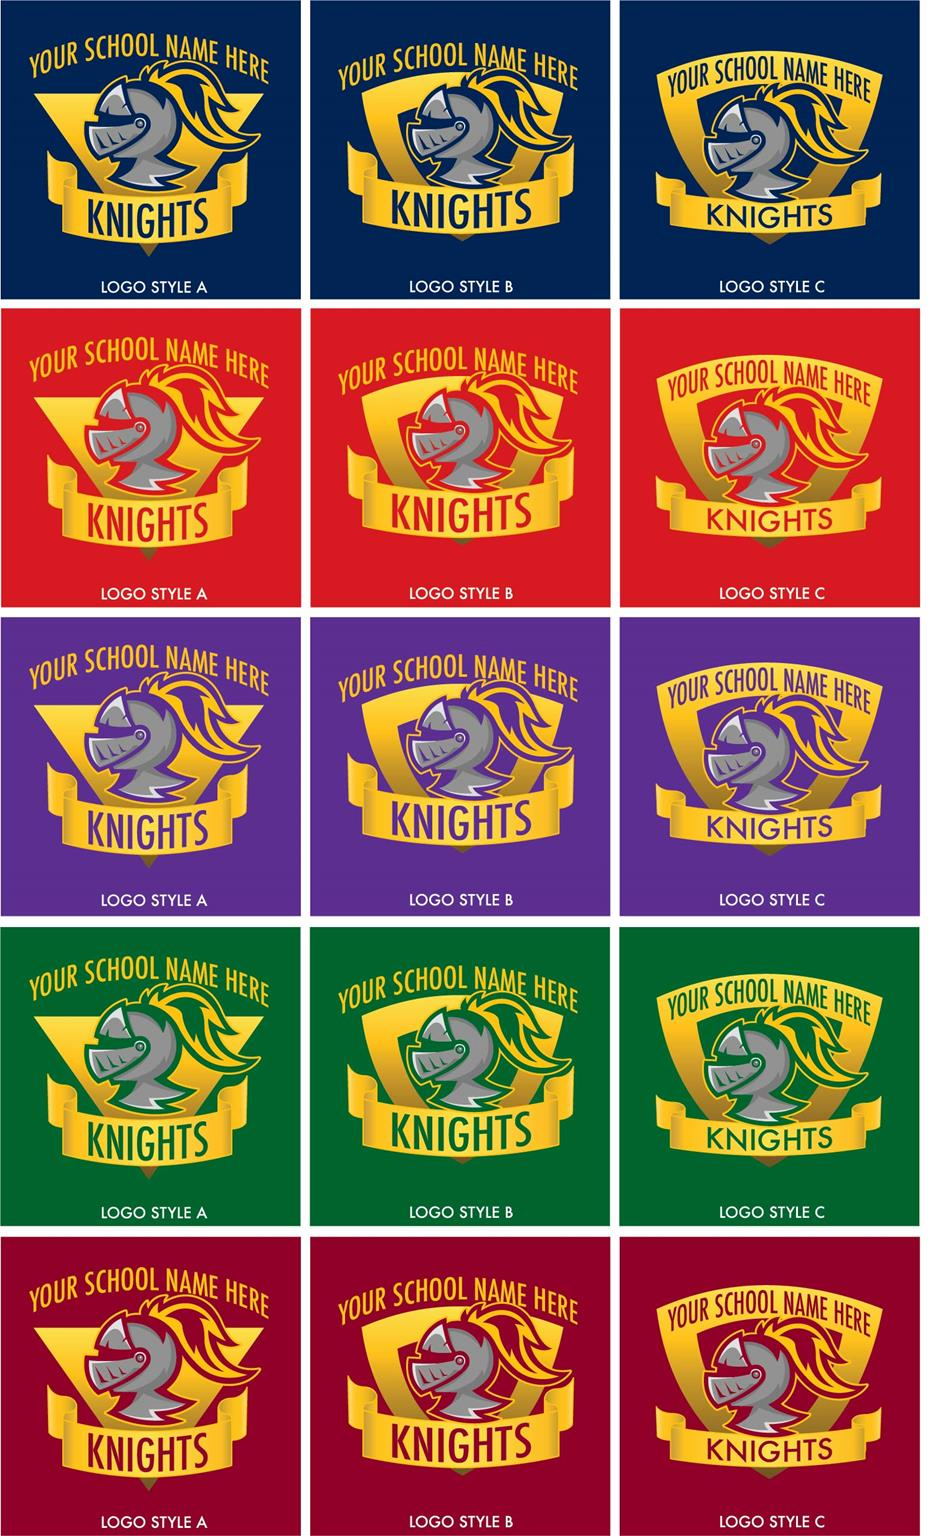 Knight Logo School Mascot